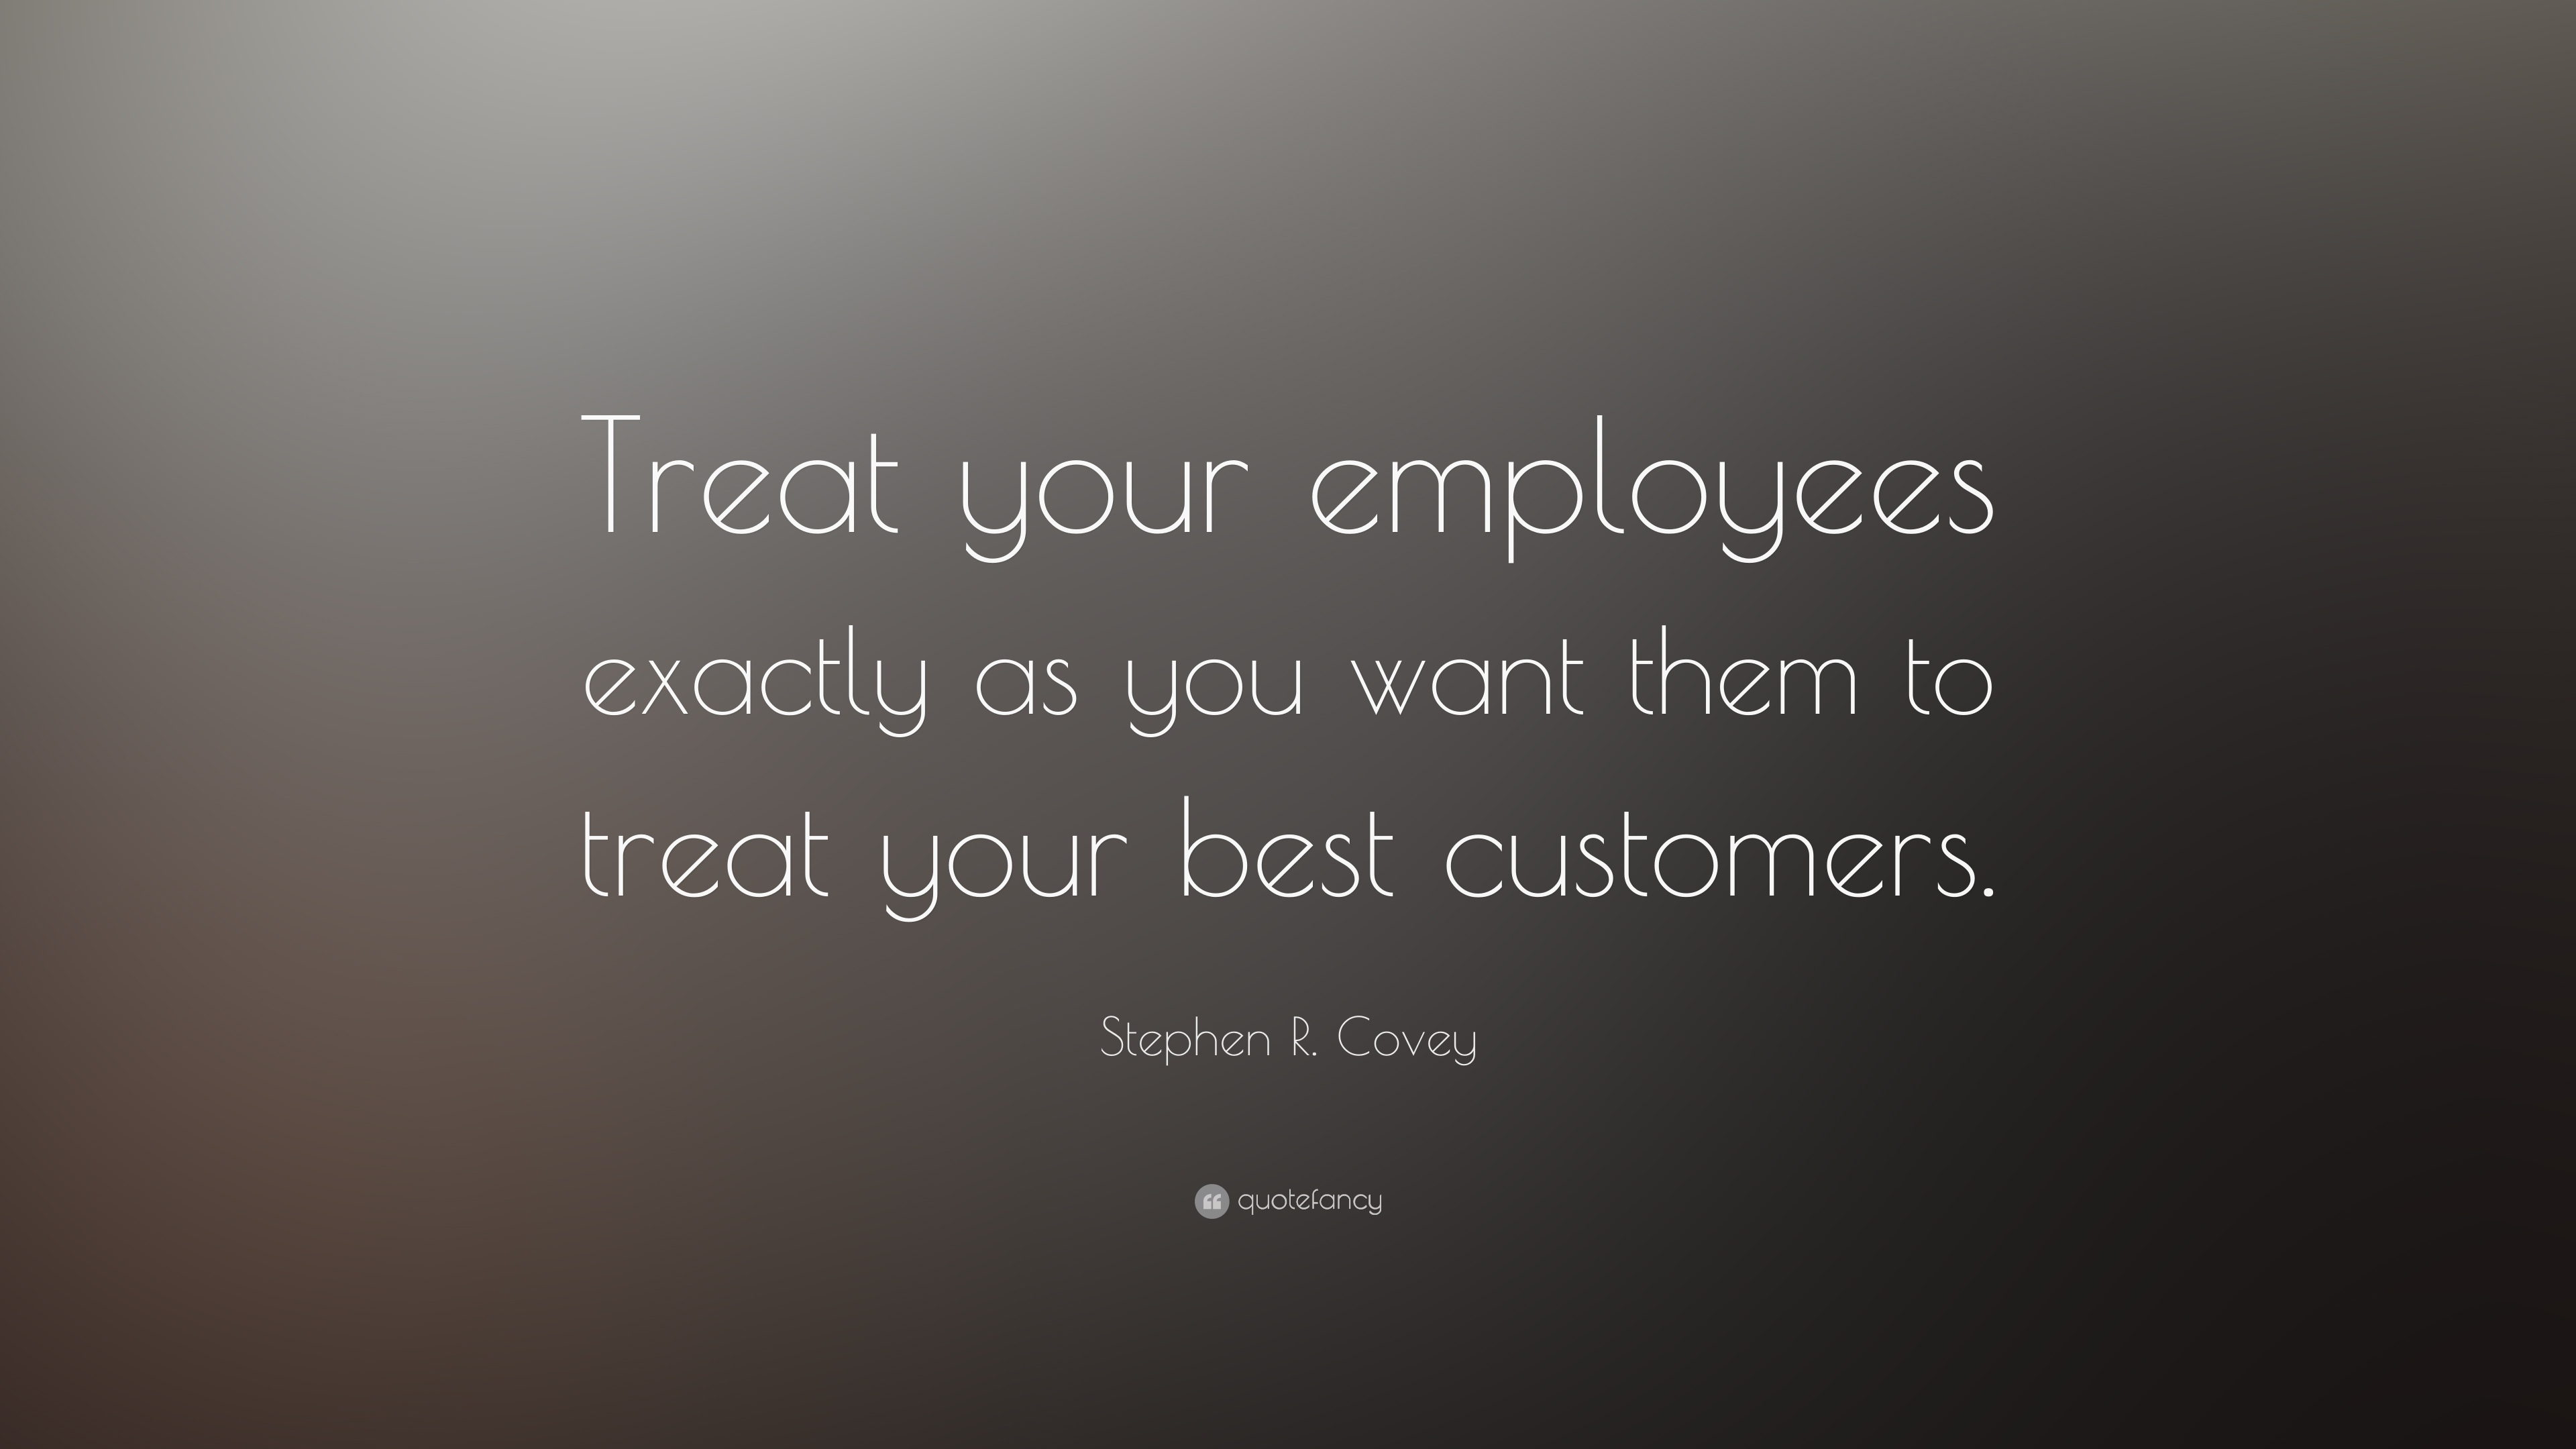 Stephen R Covey Quote Treat Your Employees Exactly As You Want